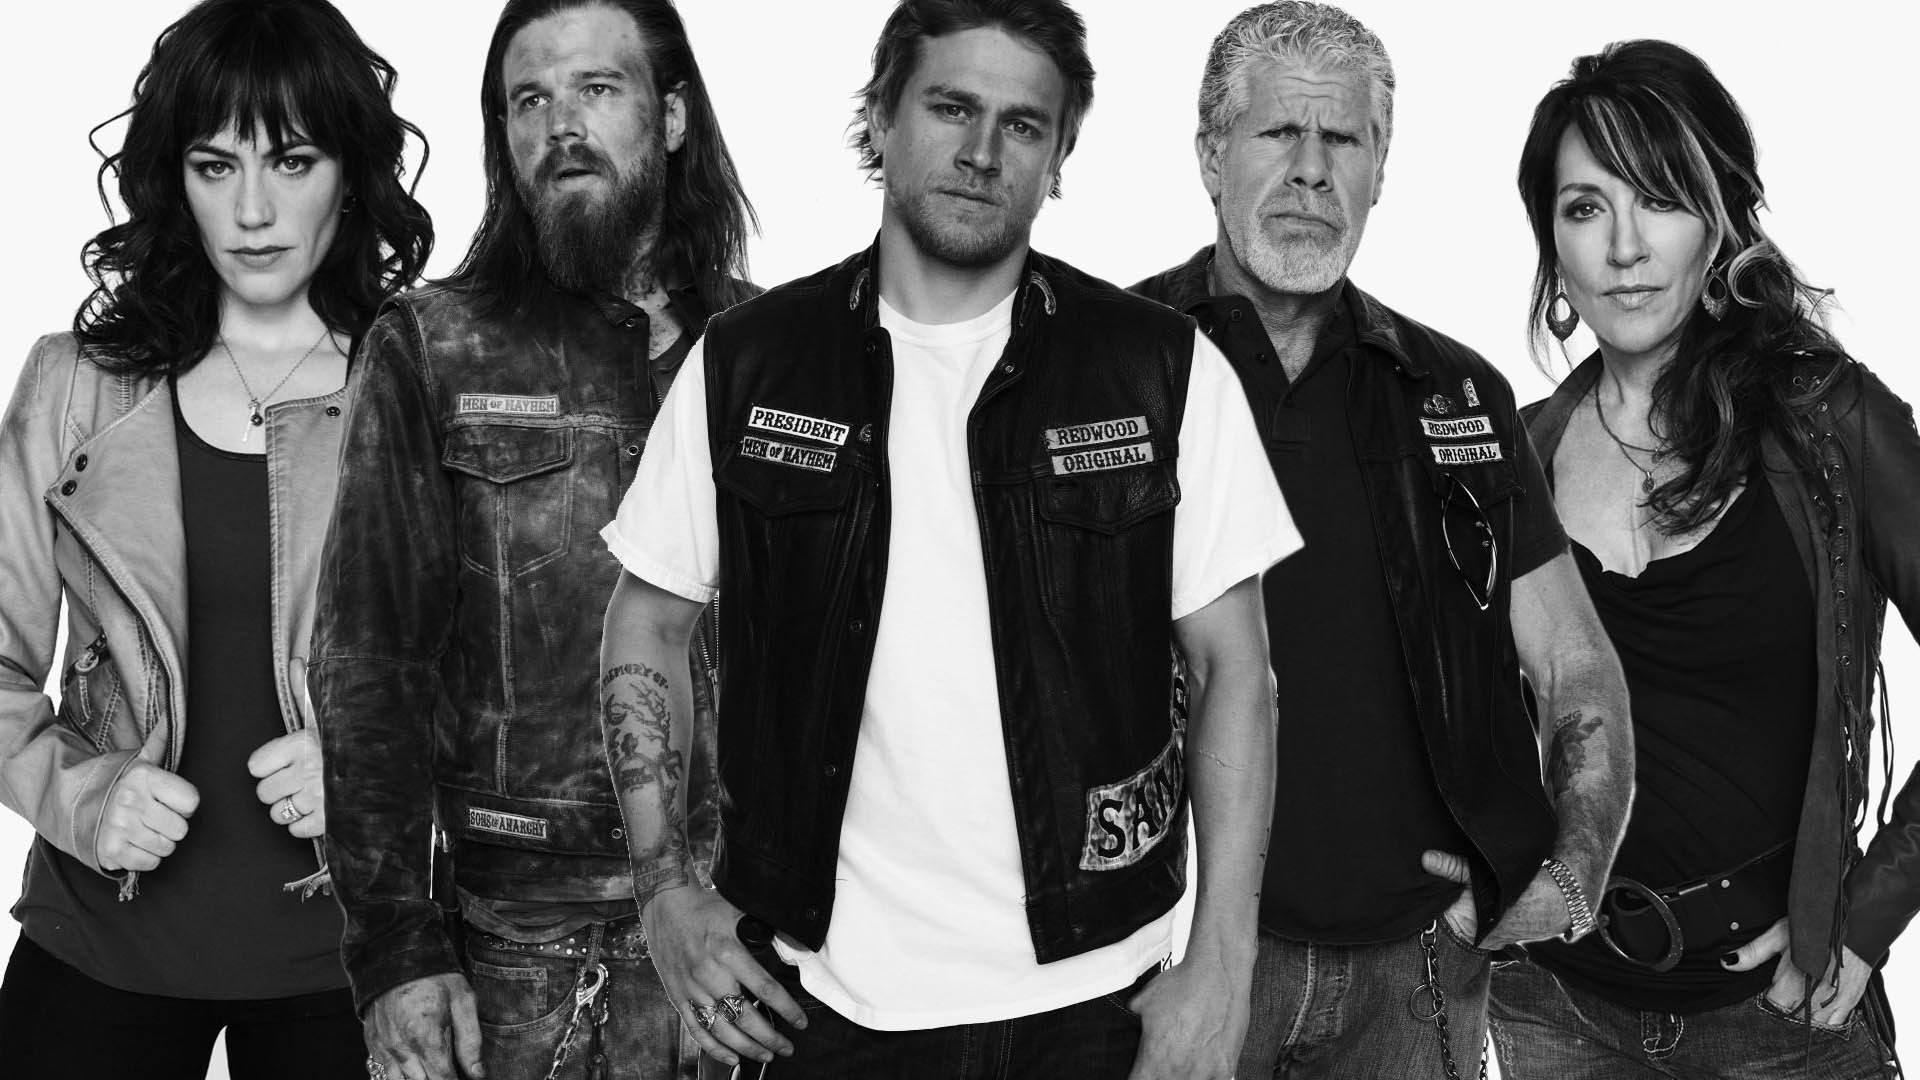 Sons Of Anarchy Jax Teller Wallpapers Wallpaper Cave